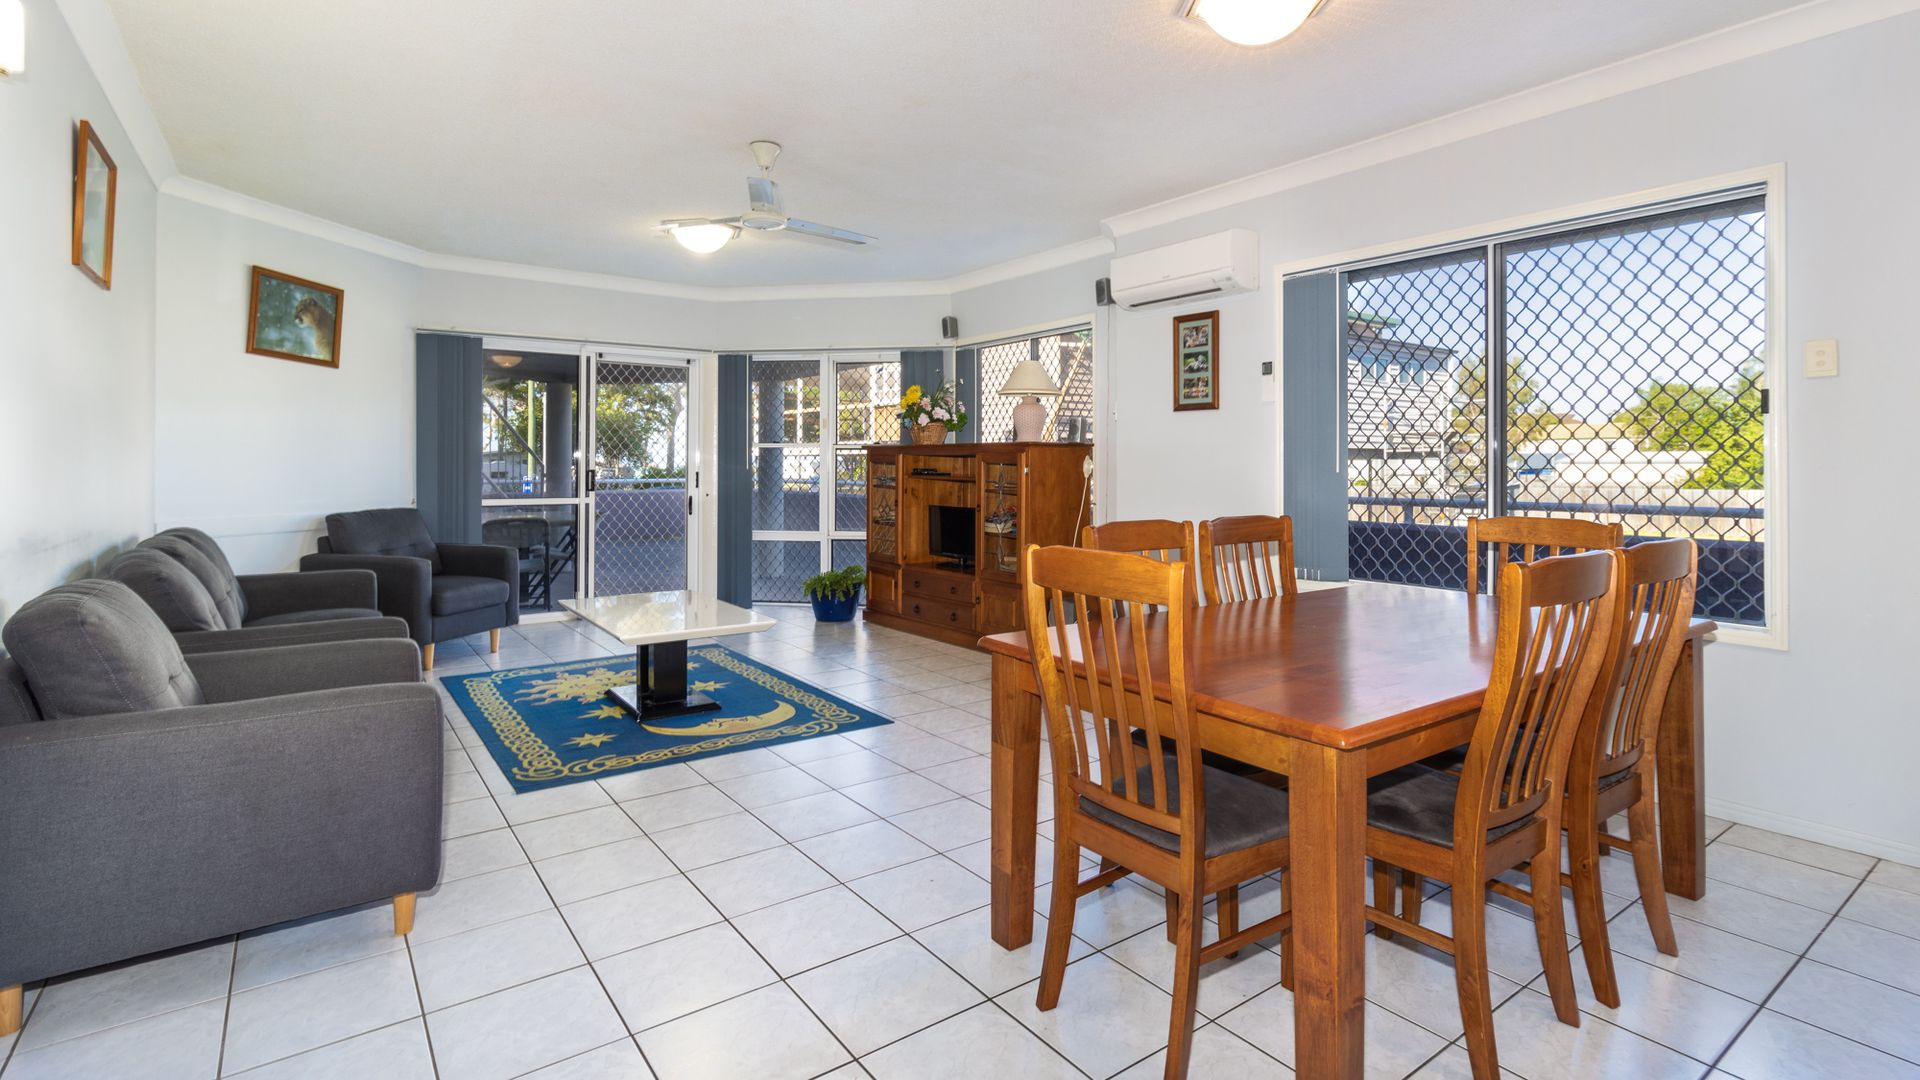 2 bed house at 3/438 Esplanade, Torquay | #1657826 | Rentberry